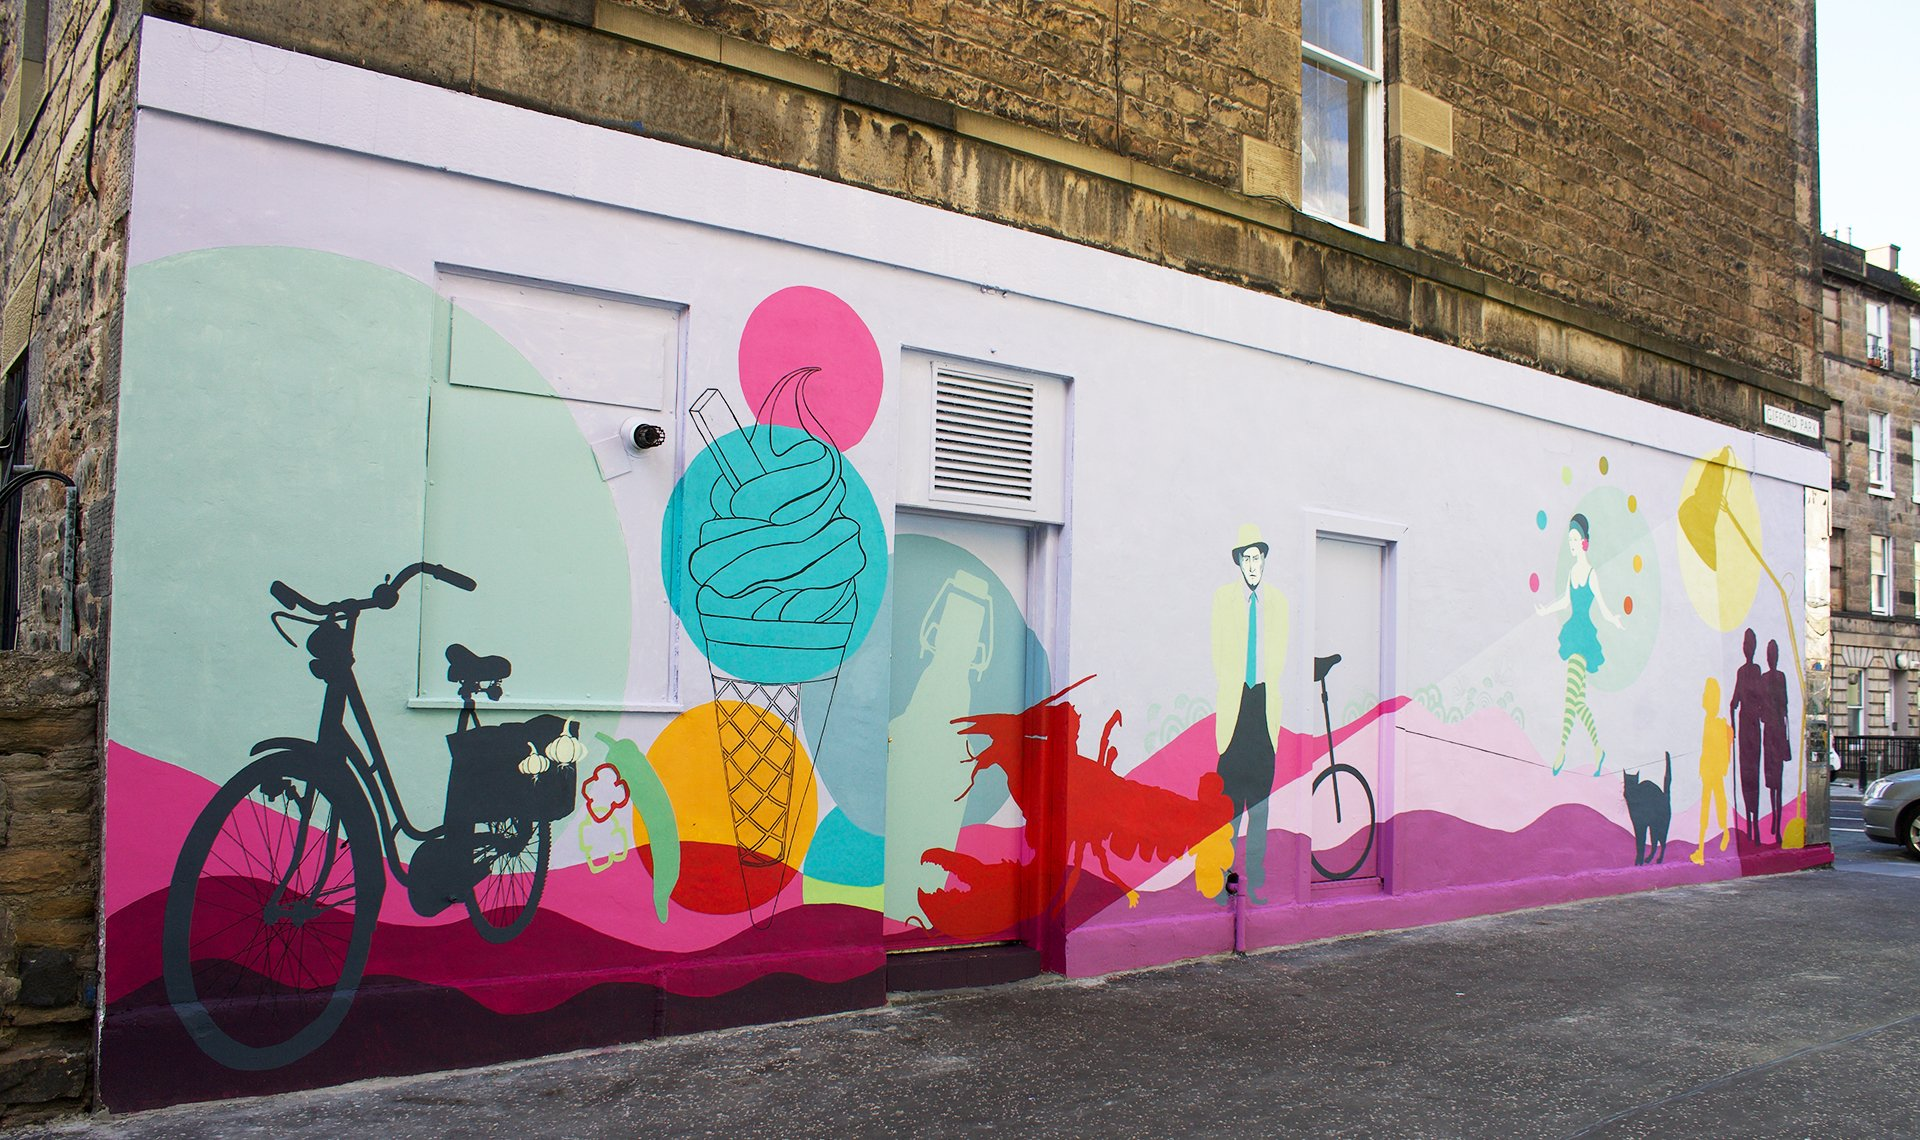 Gifford Park Mural in bright pinks and blues with artworks including ice-cream cone, a juggling tightrope walker and bicycle